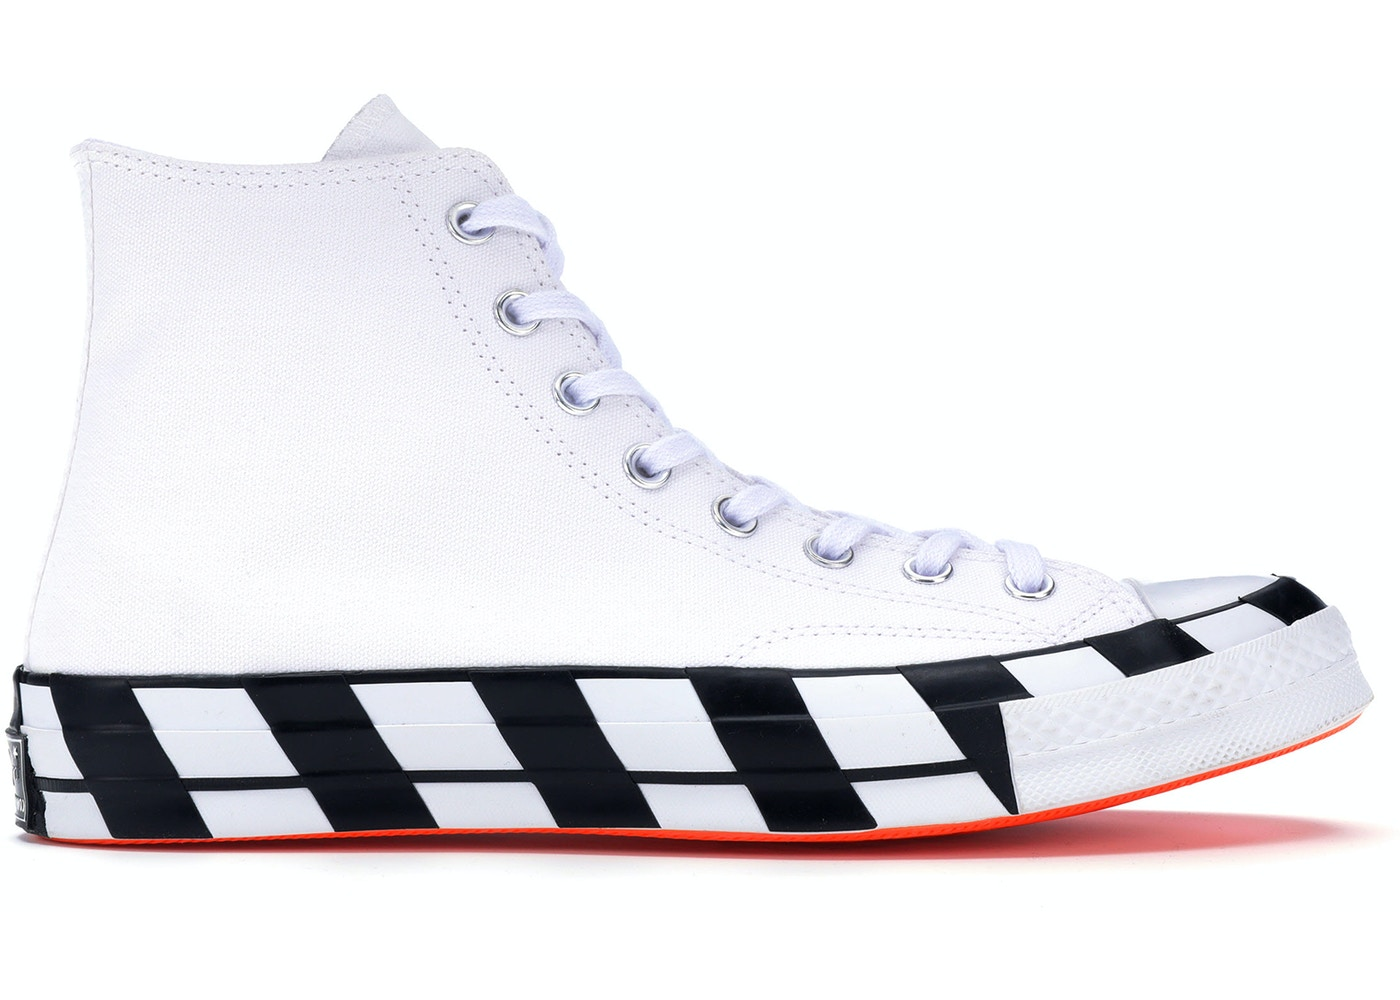 Menos Mar digerir  Converse Chuck Taylor All-Star 70s Hi Off-White - 163862C